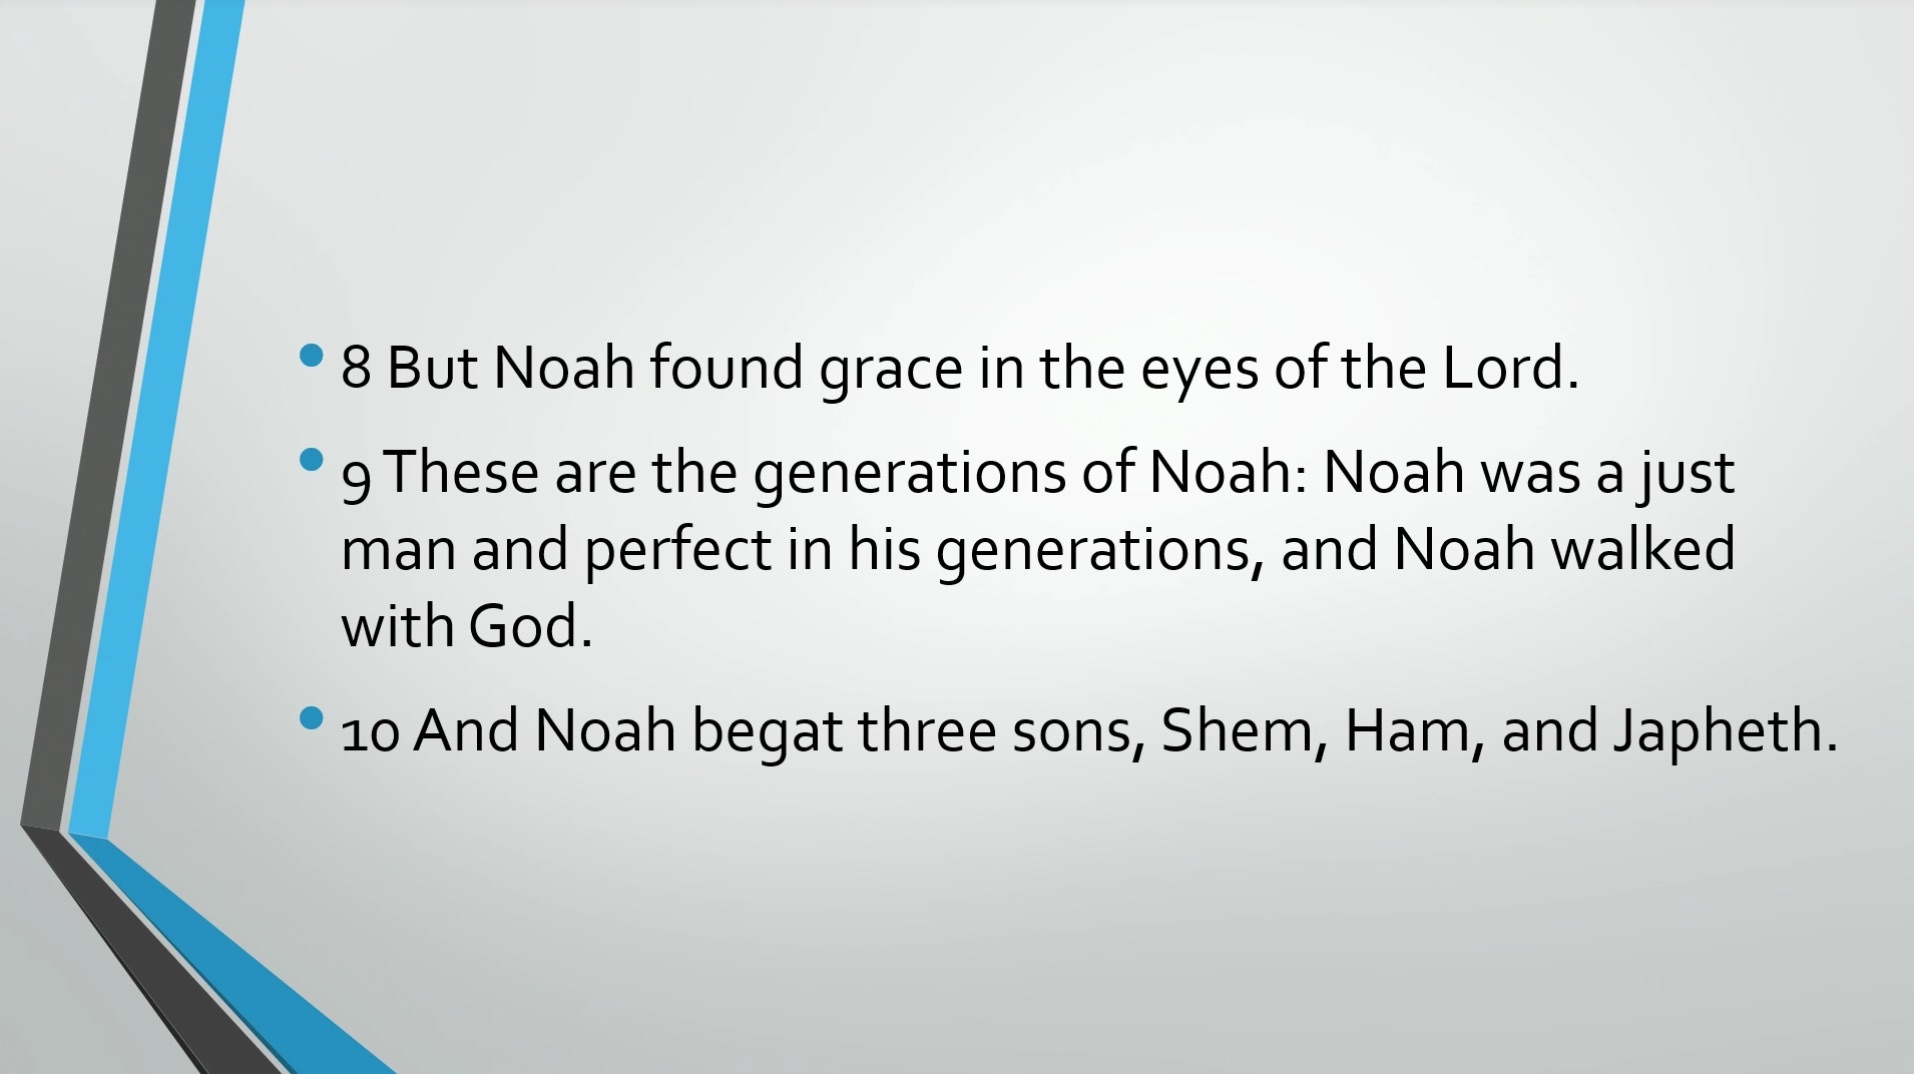 Biblical Series VII: Walking with God: Noah and the Flood Transcript